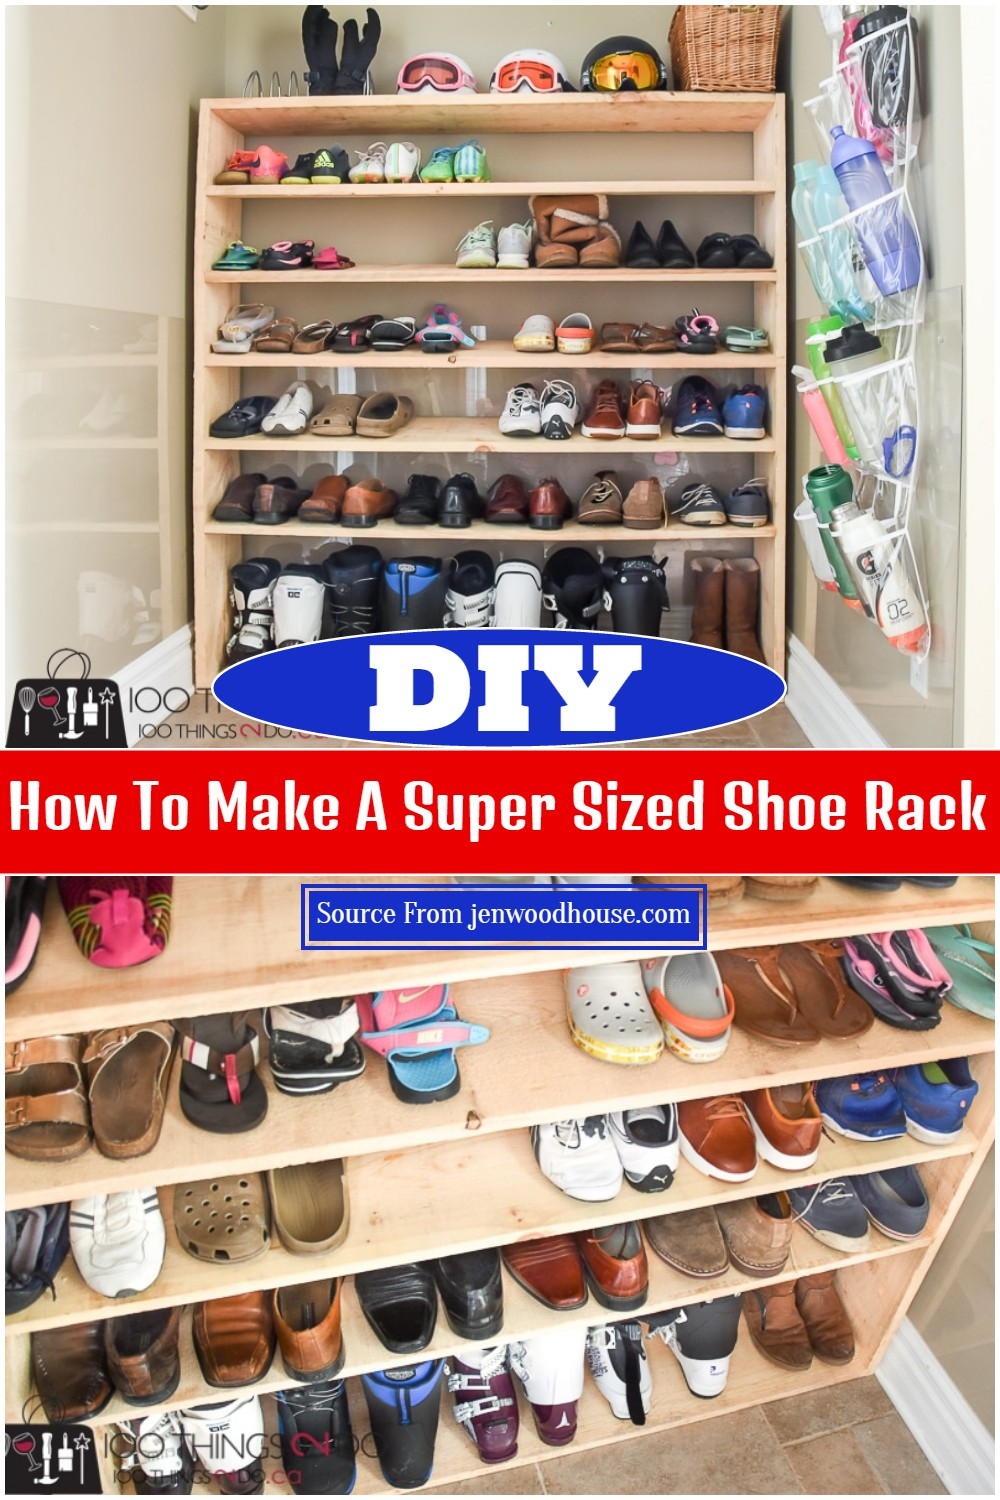 How To Make A Super Sized DIY Shoe Rack